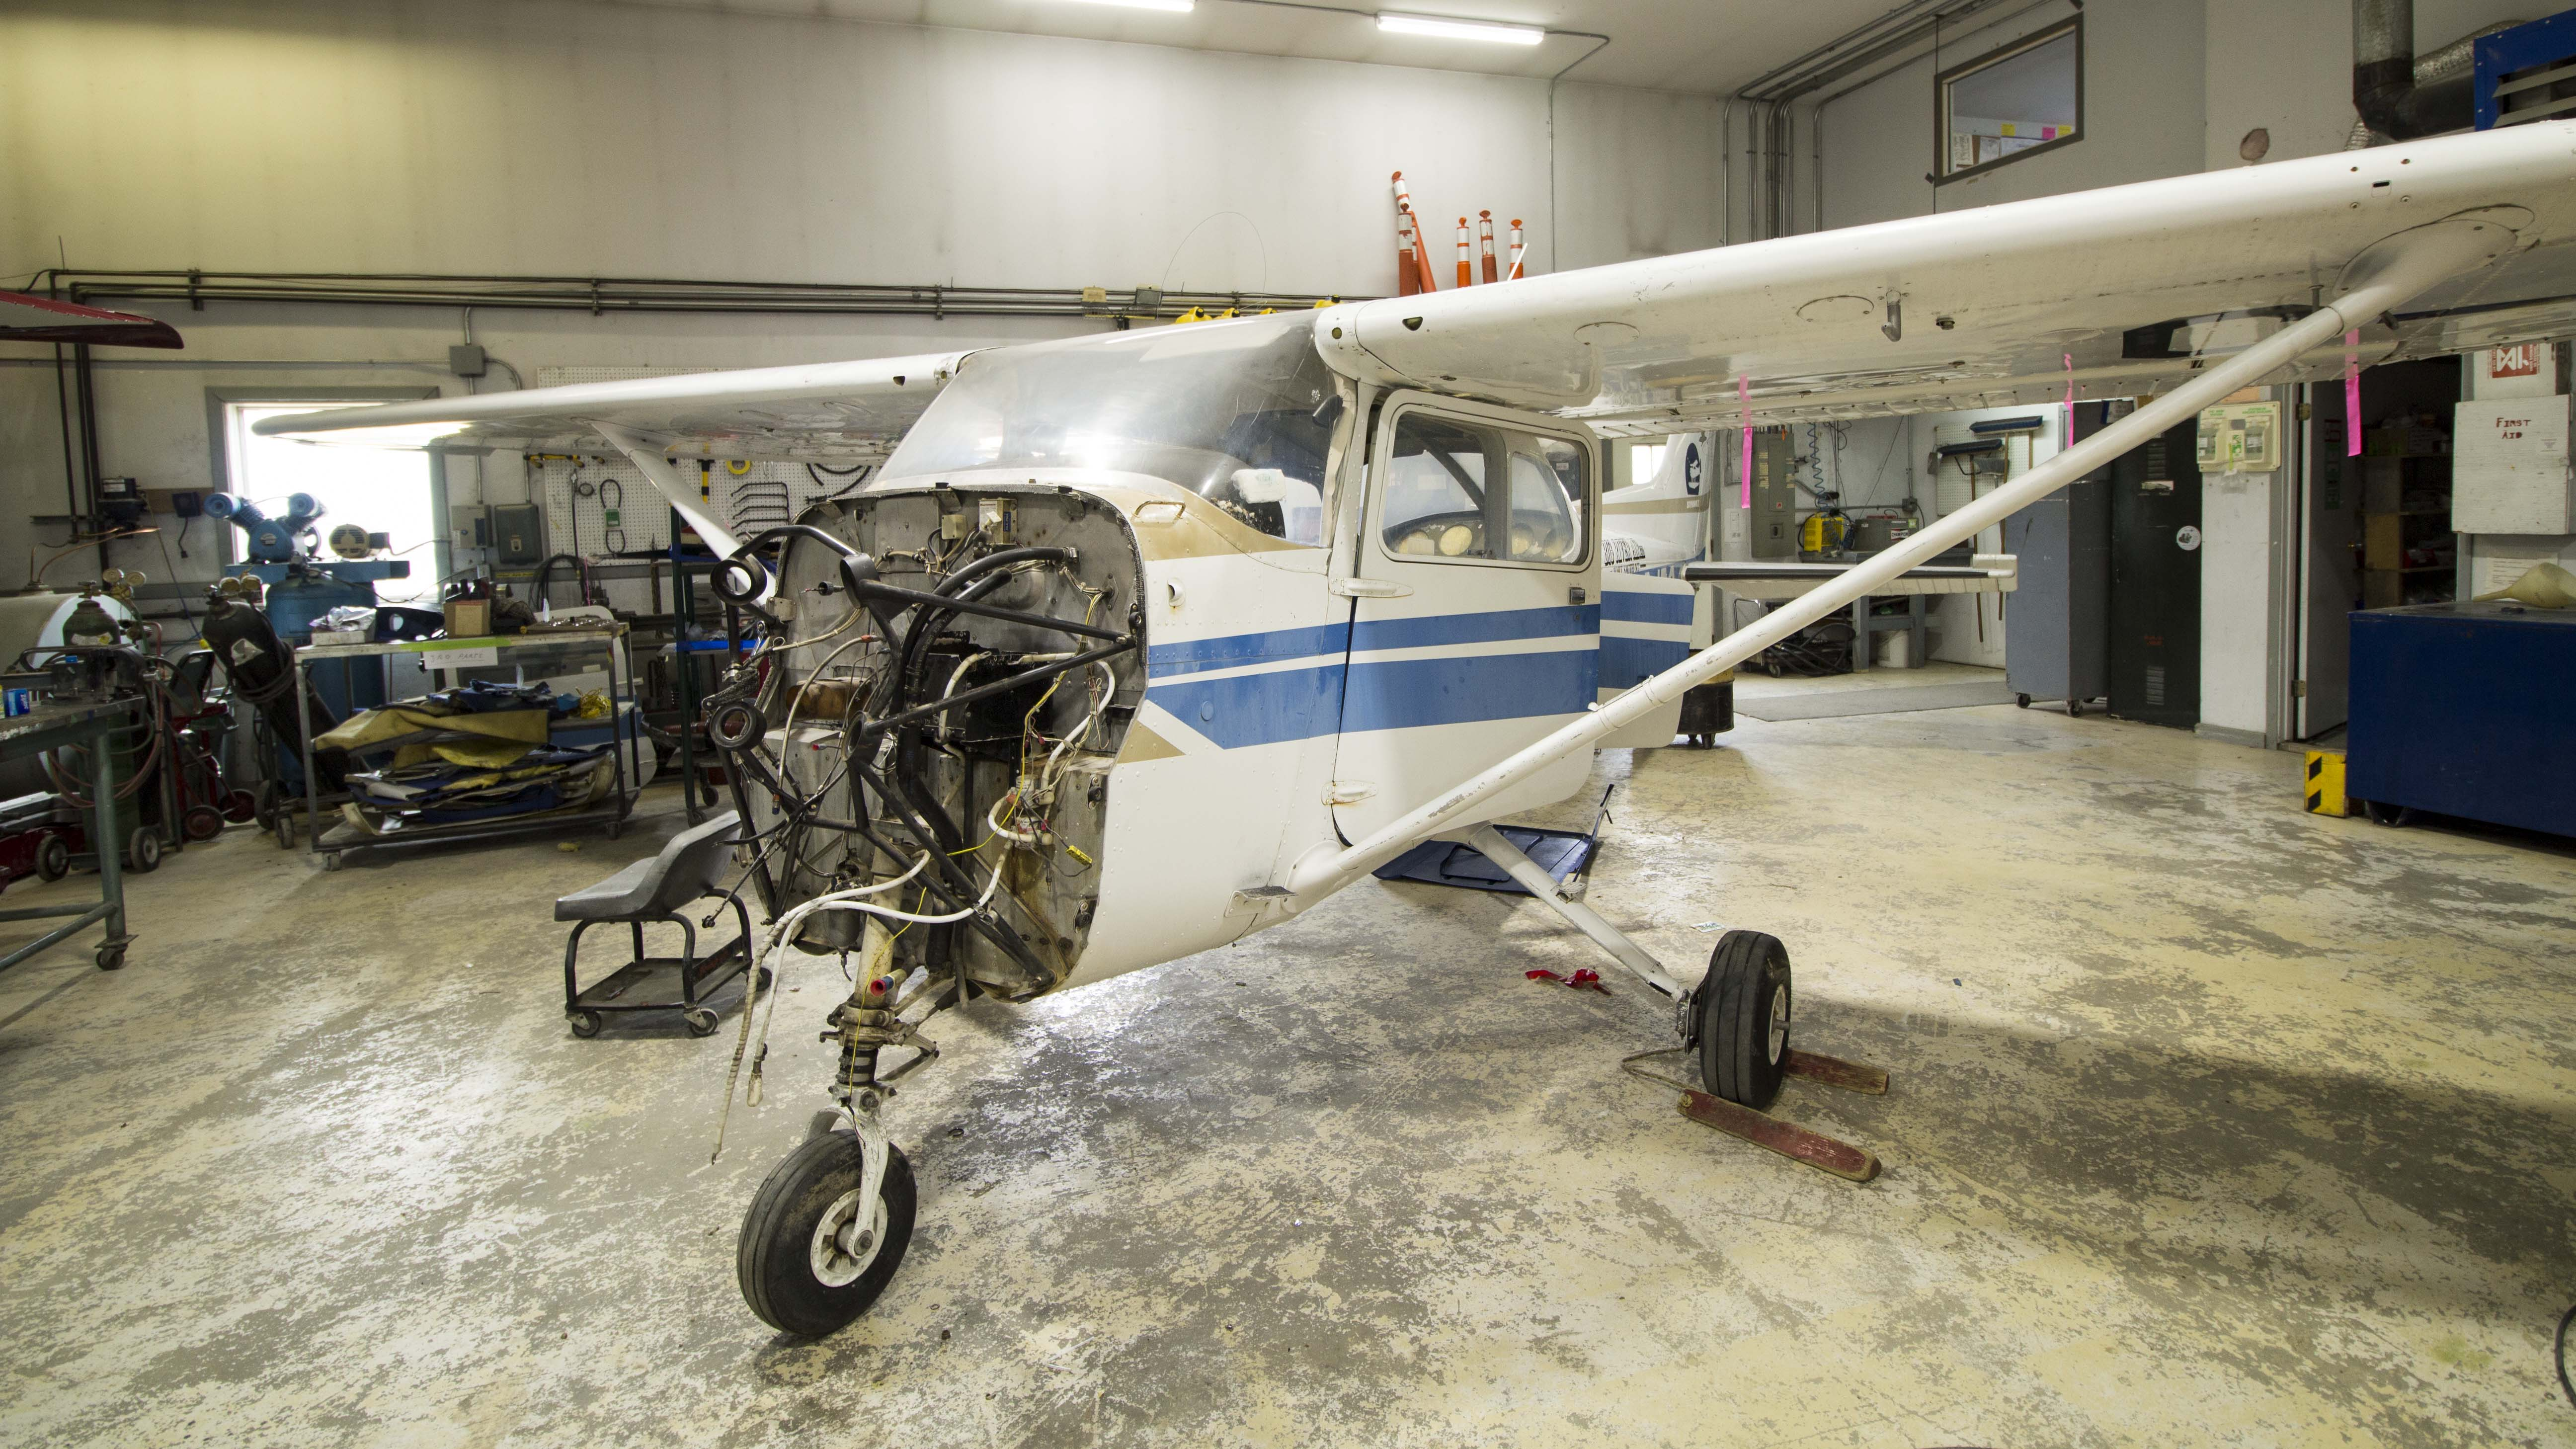 Northwestern Air Lease recently purchased a Cessna 172 for its